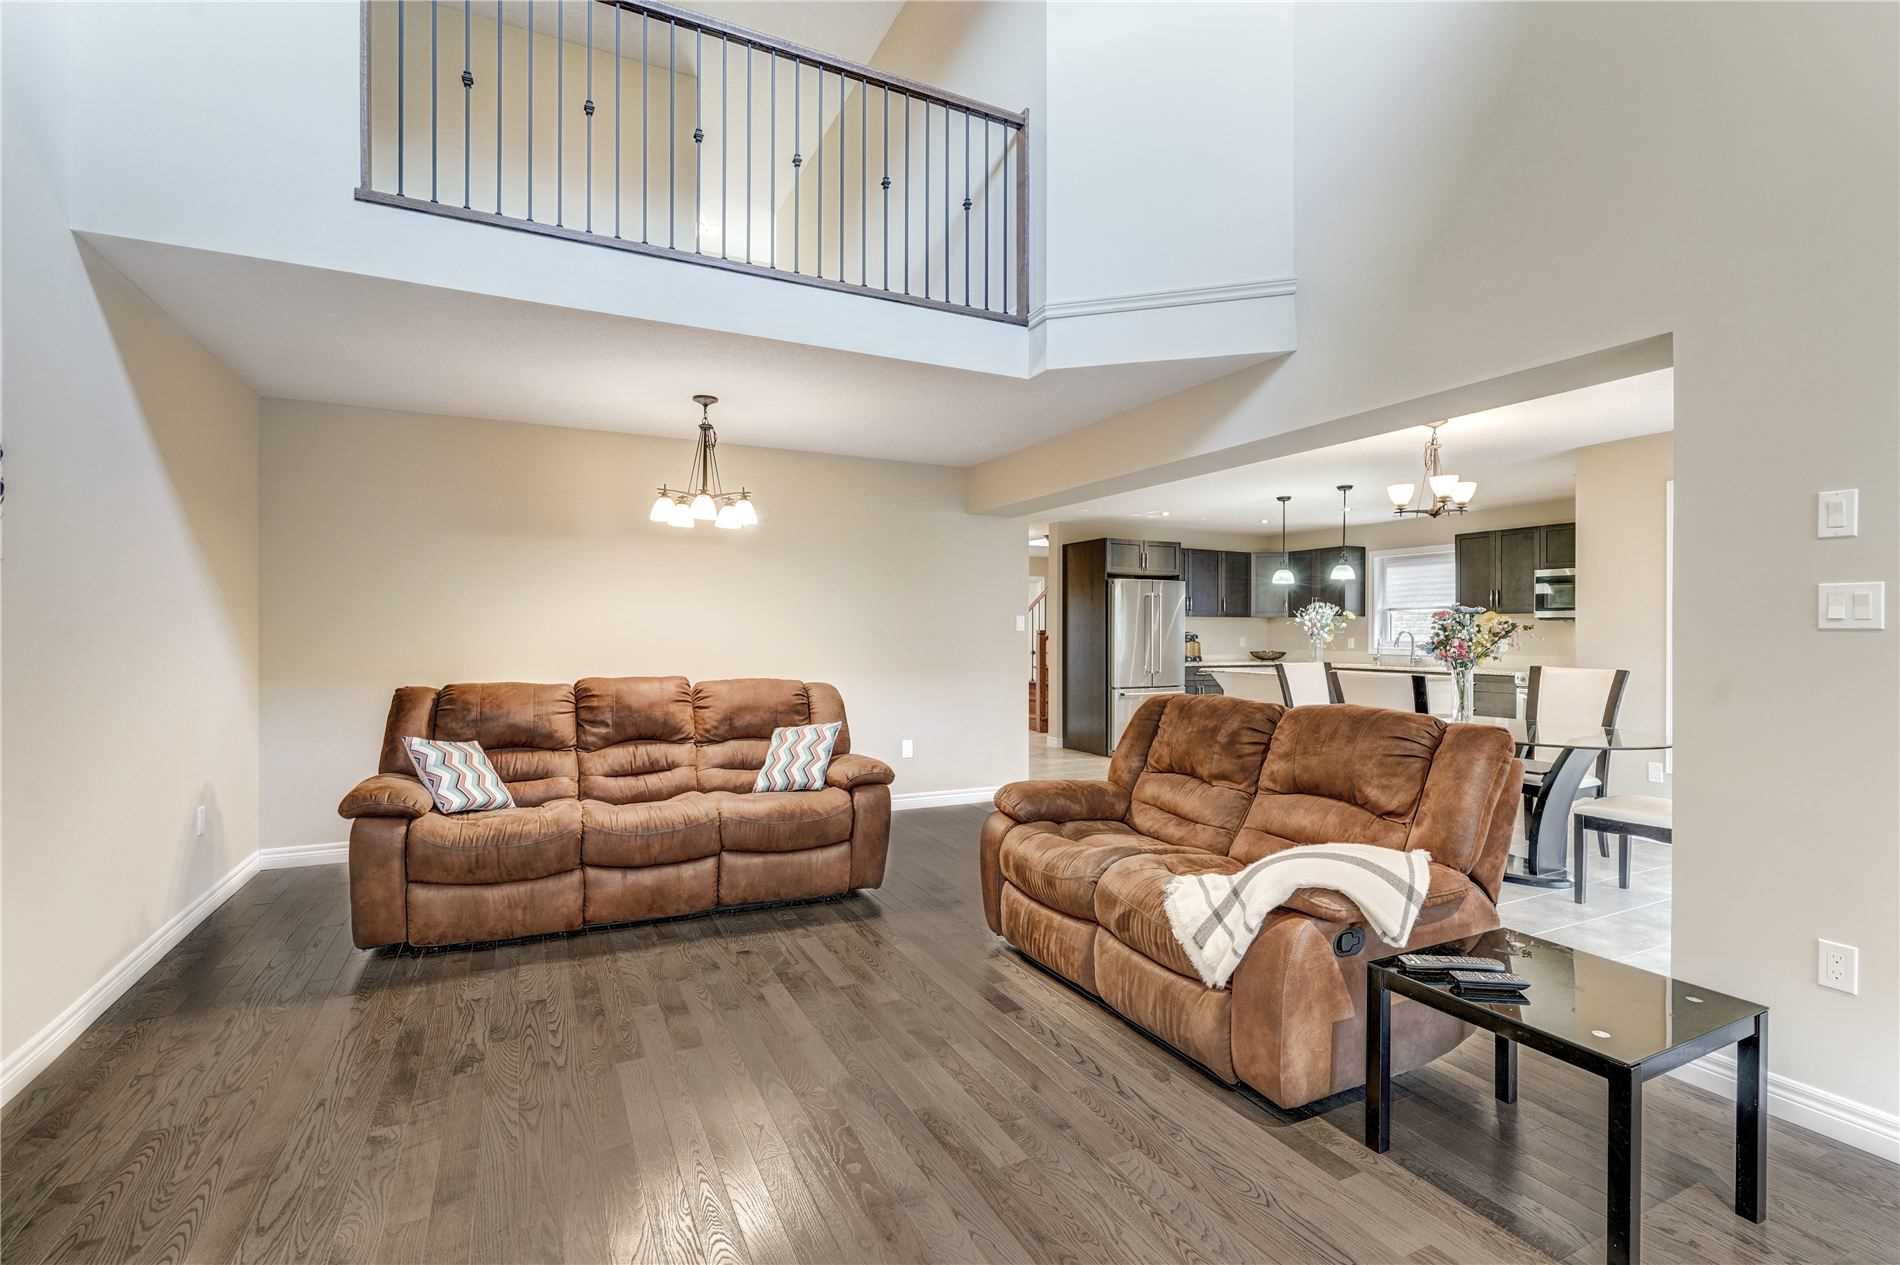 Image 15 of 19 showing inside of 4 Bedroom Detached 2-Storey house for sale at 4 Stuckey Lane, East Luther Grand Valley L0N1G0